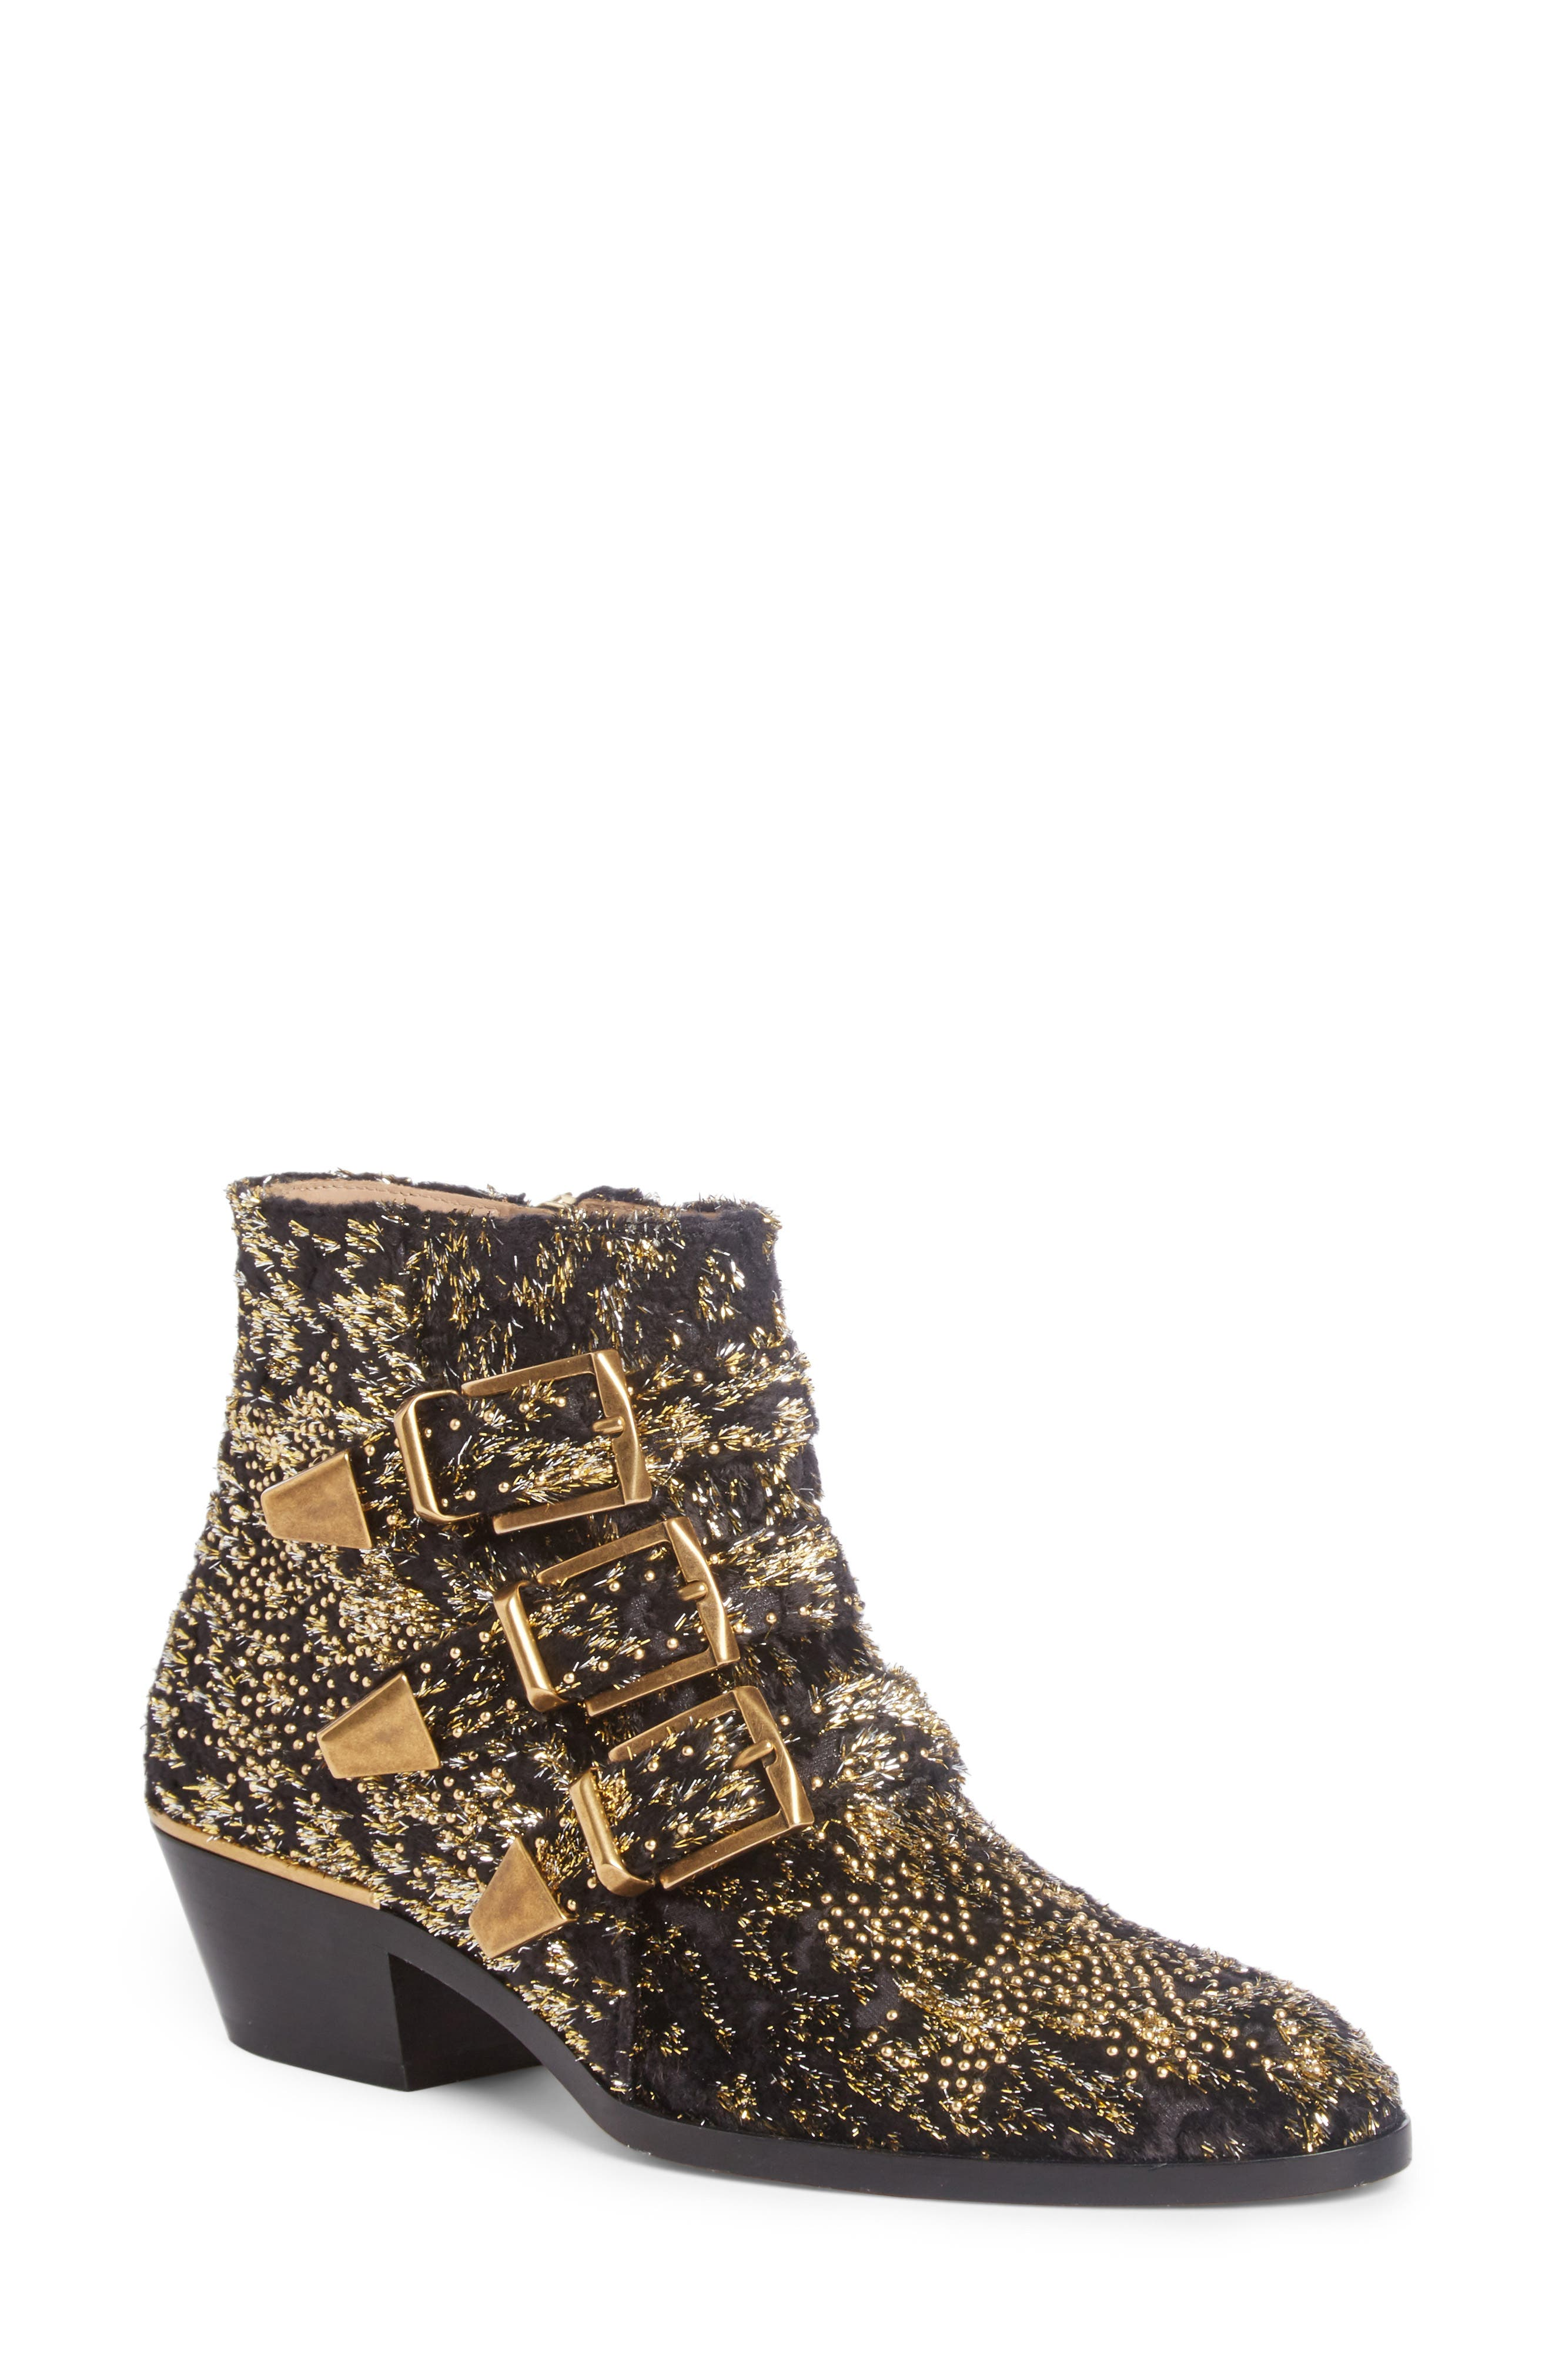 Alternate Image 1 Selected - Chloé Susanna Tinsel Studded Bootie (Women)